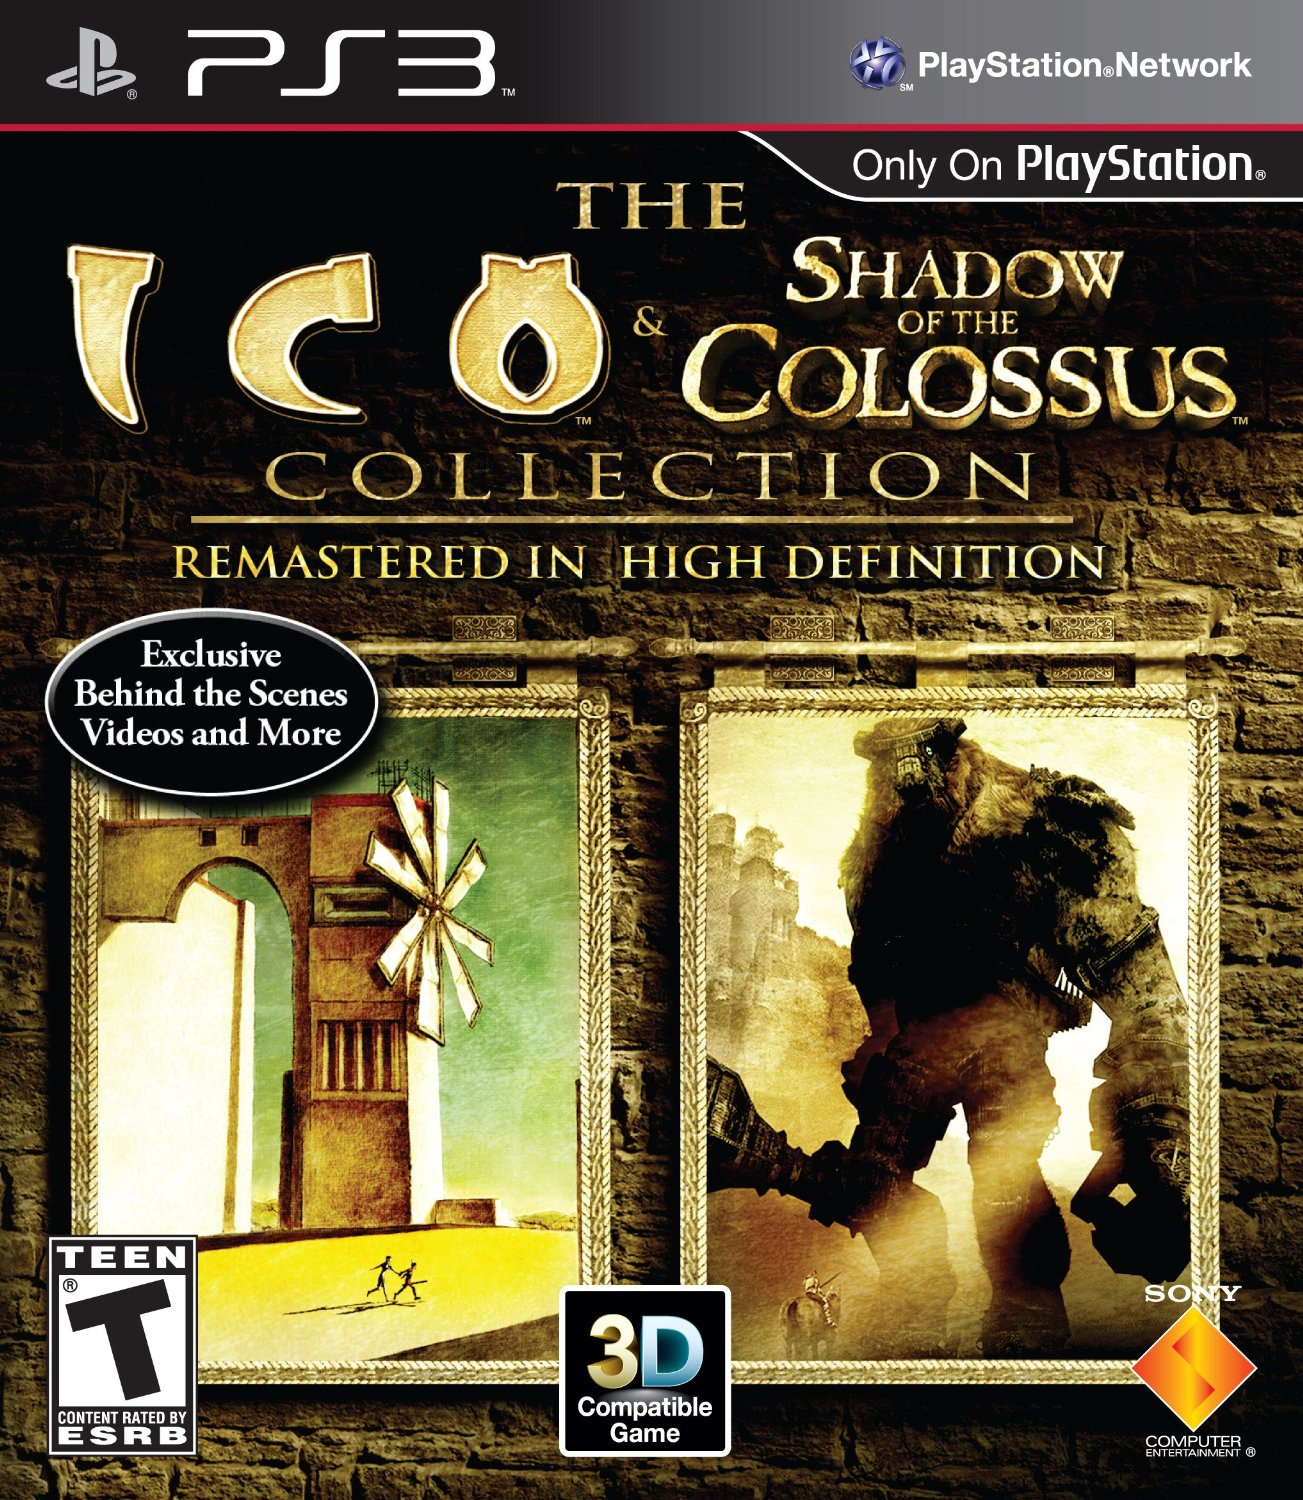 Ico & Shadow of the Colossus Collection Playstation 3 Game